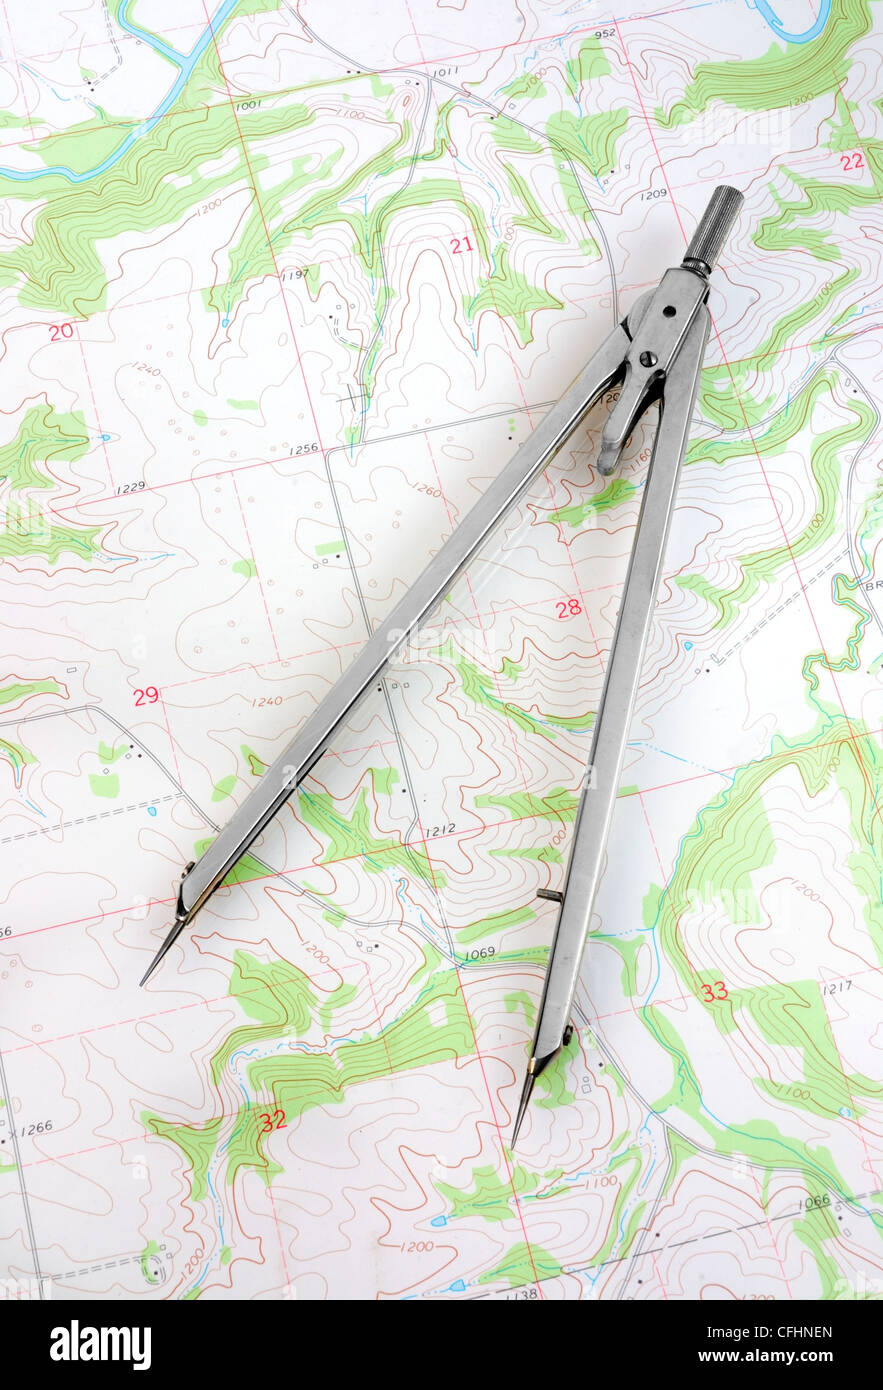 A cartographer's divider measuring distance on a topographic map. (USGS topographic map in the public domain). - Stock Image